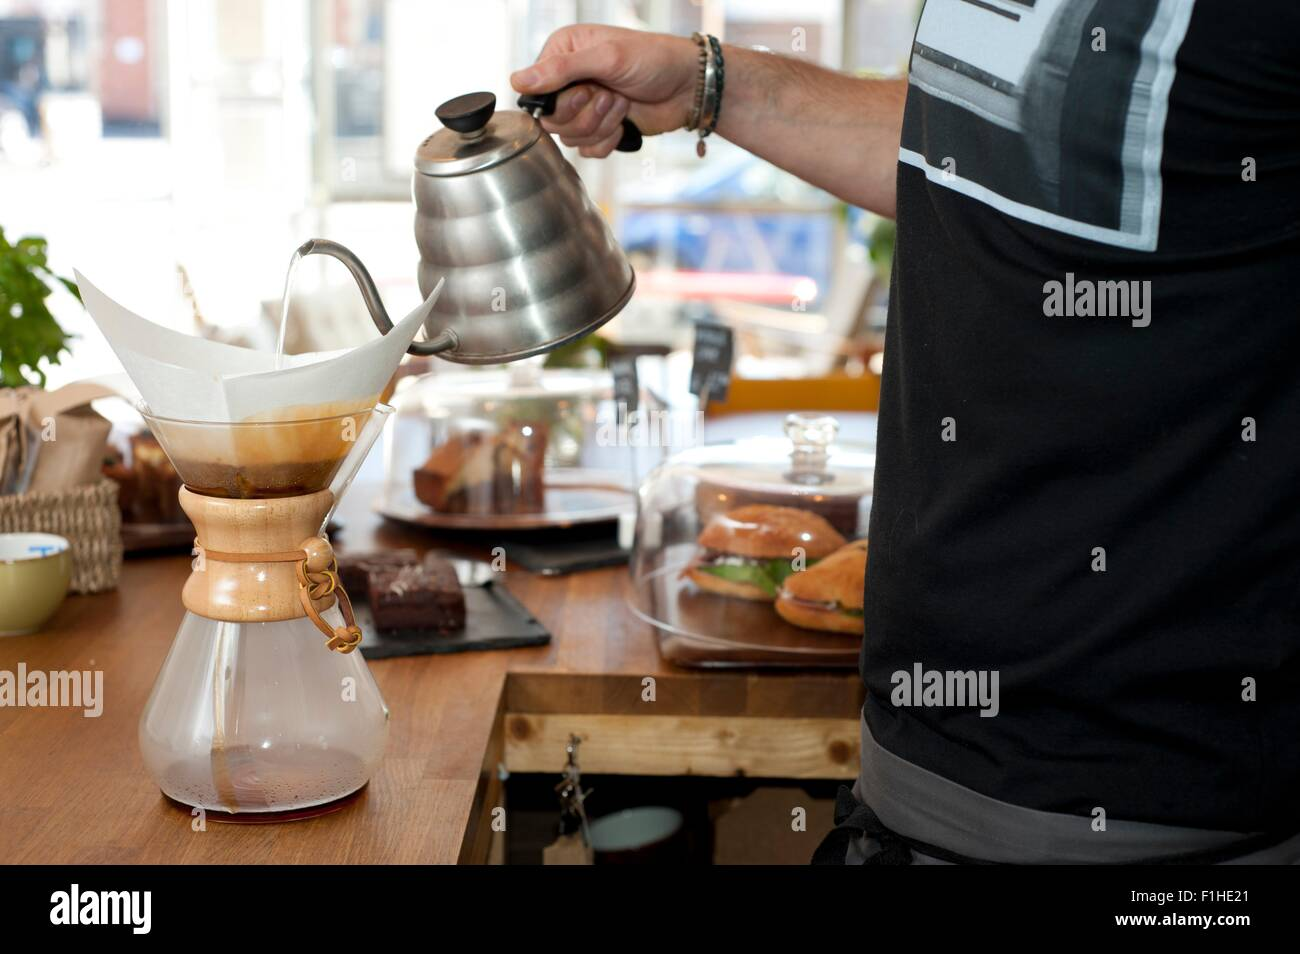 Hand of cafe waiter pouring boiling water into filter coffee pot - Stock Image